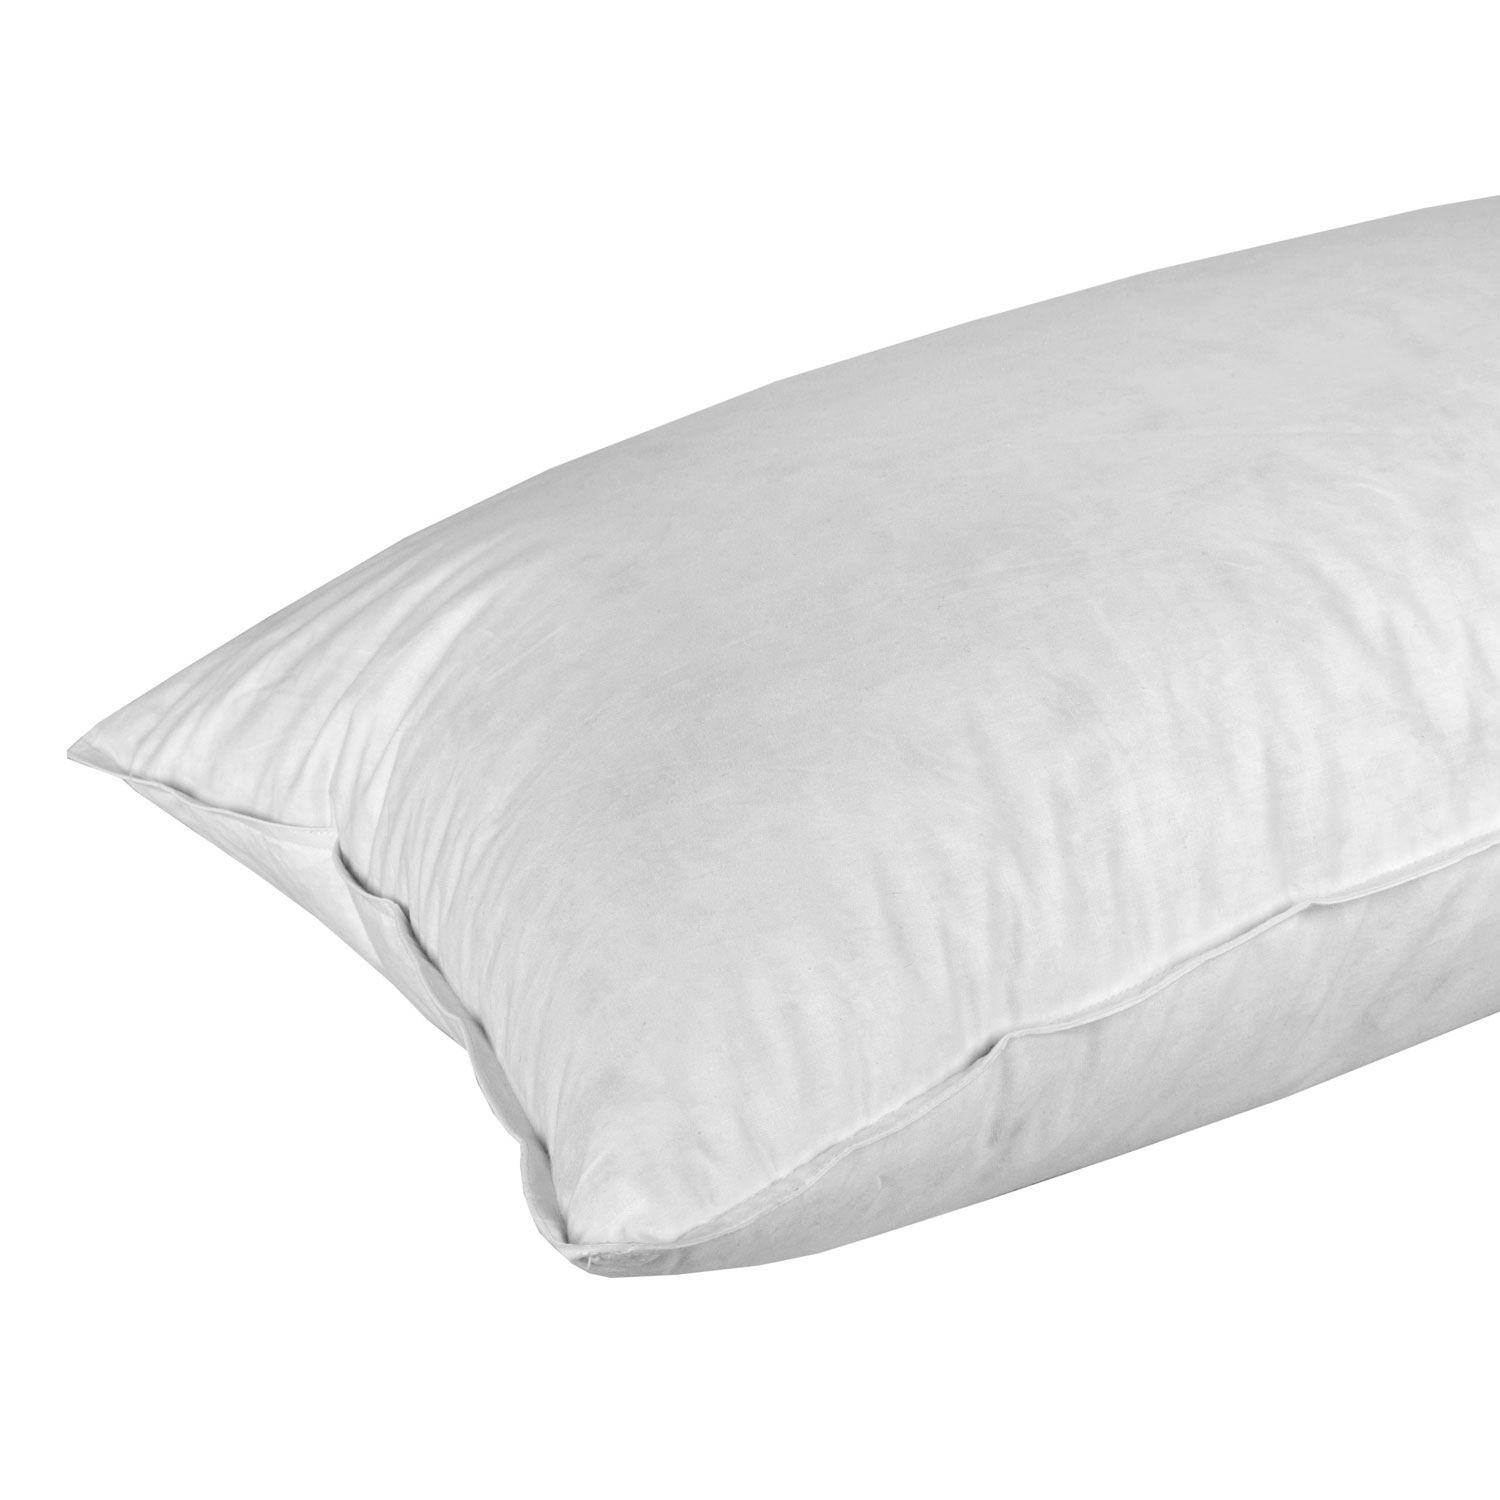 Duck feather and down continental pillow 100 cotton for Duck or goose feather pillows which is better